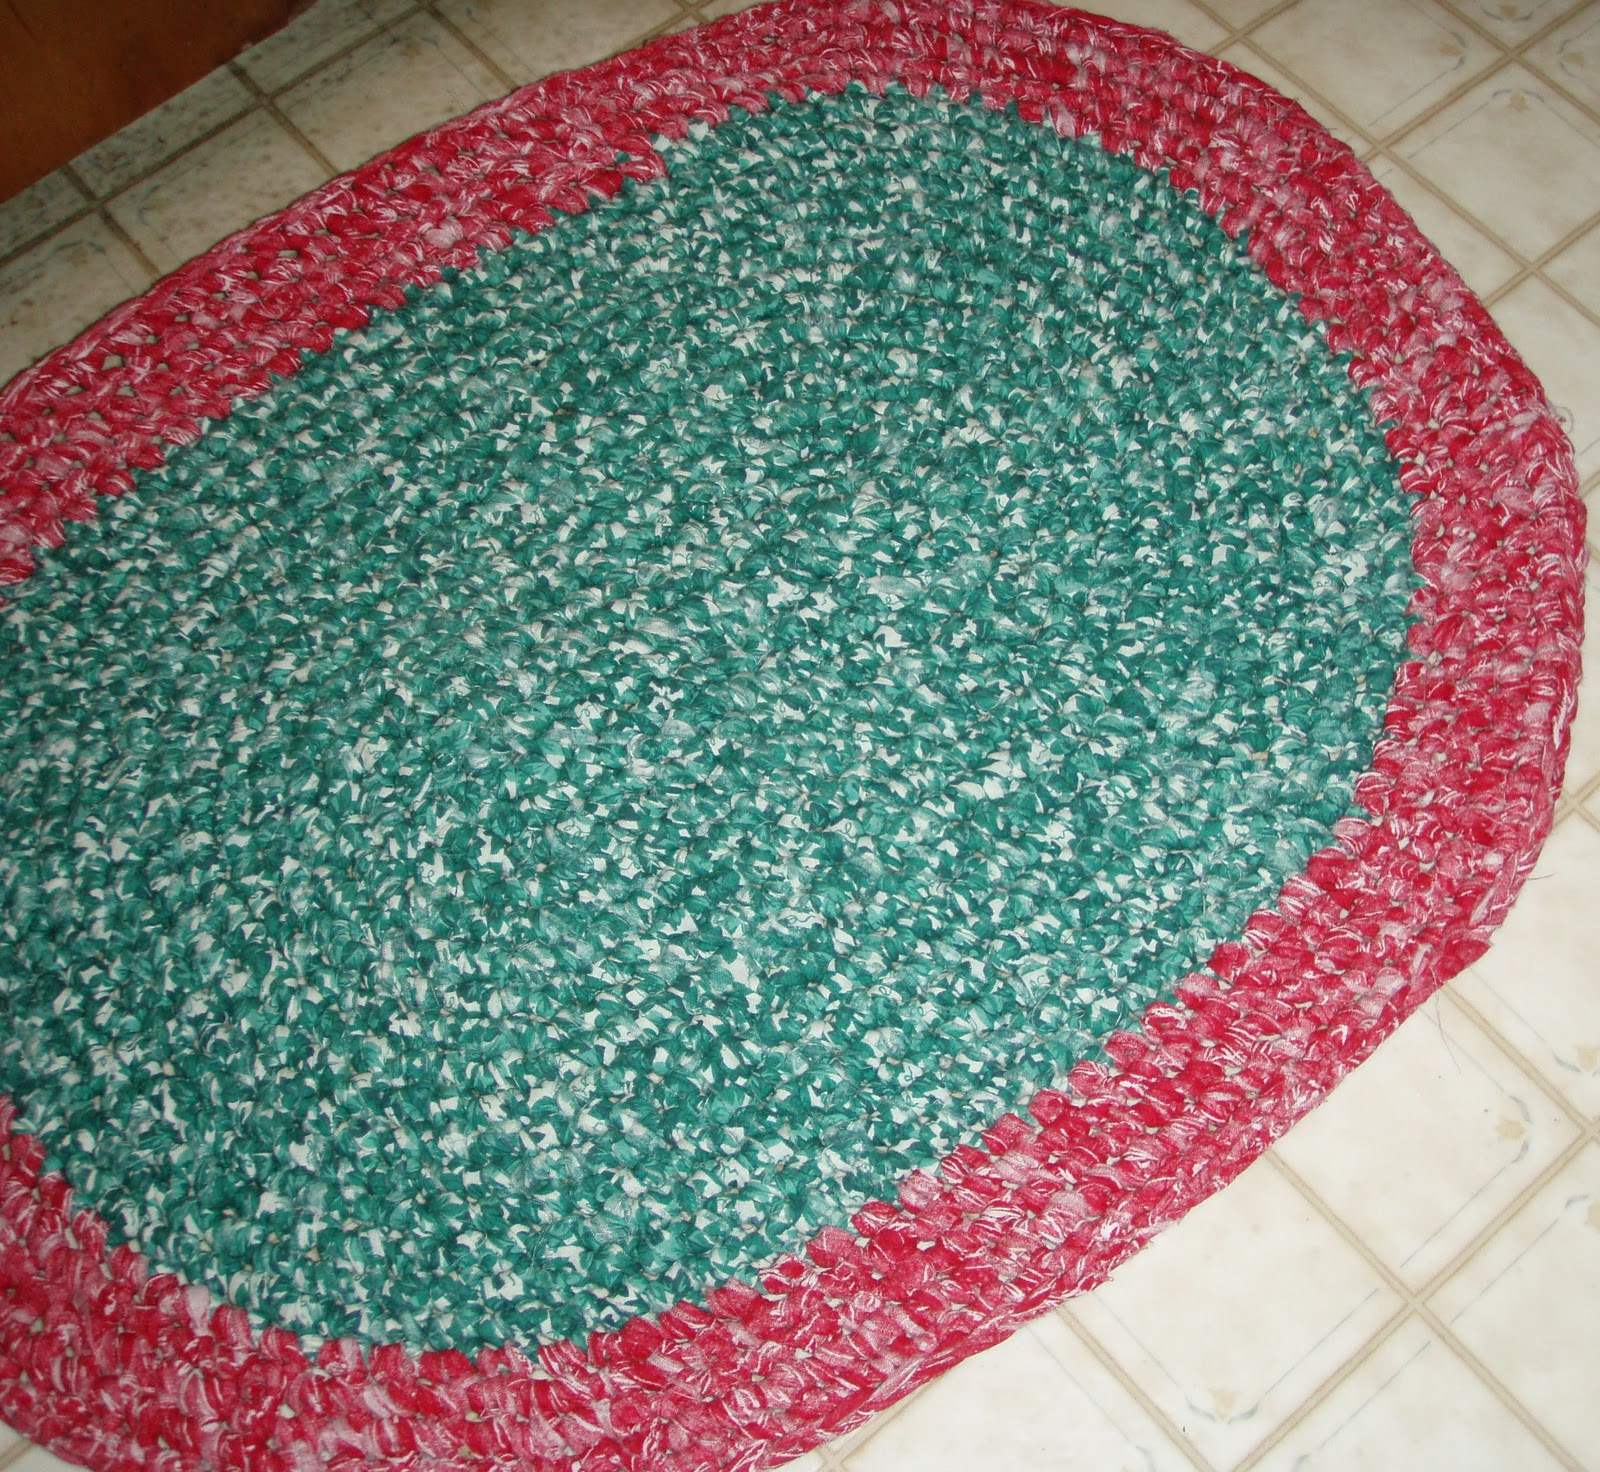 Heathers Green Home Goods: Crocheted Rag Rug Tutorial